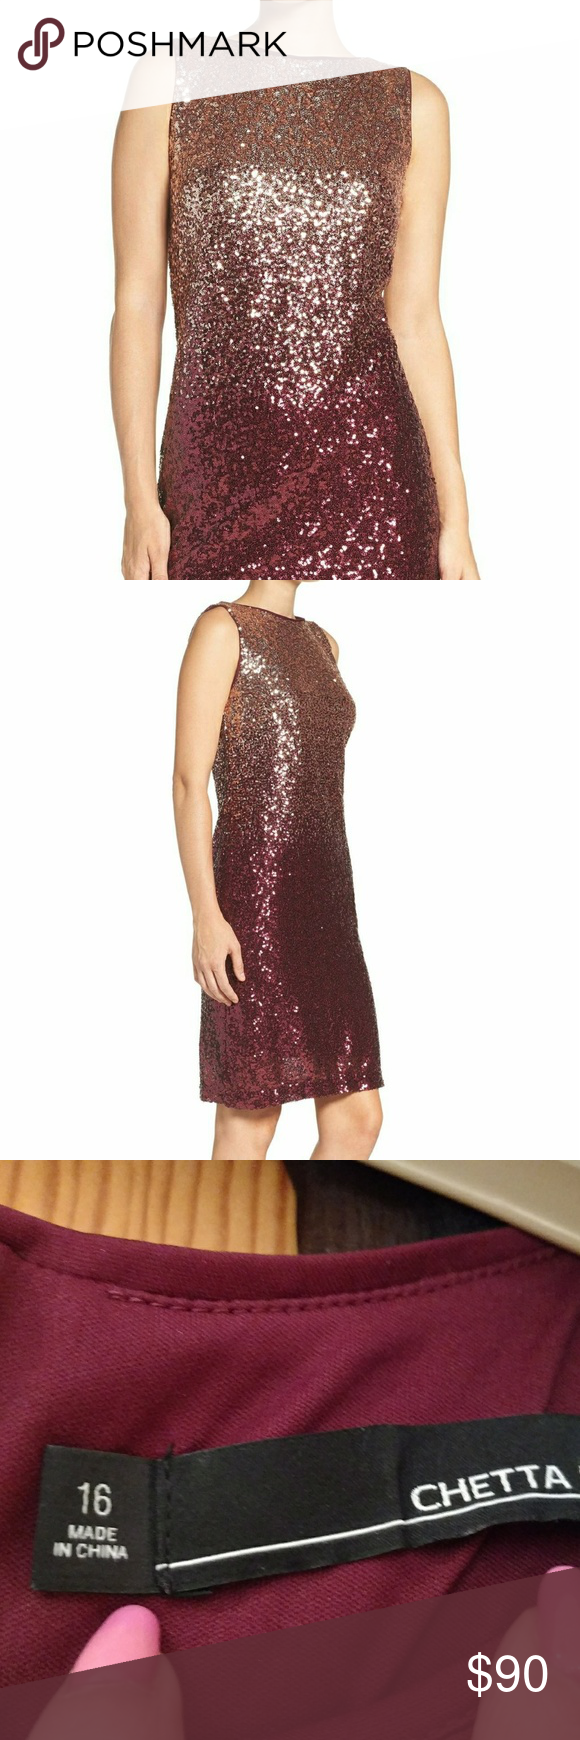 6b58c571 Chetta B NWT Ombre' Sequin Cocktail dress Rose/gold/Merlot sparkling sequined  ombre' dress. Was my runner-up dress for a gala event - to die for!